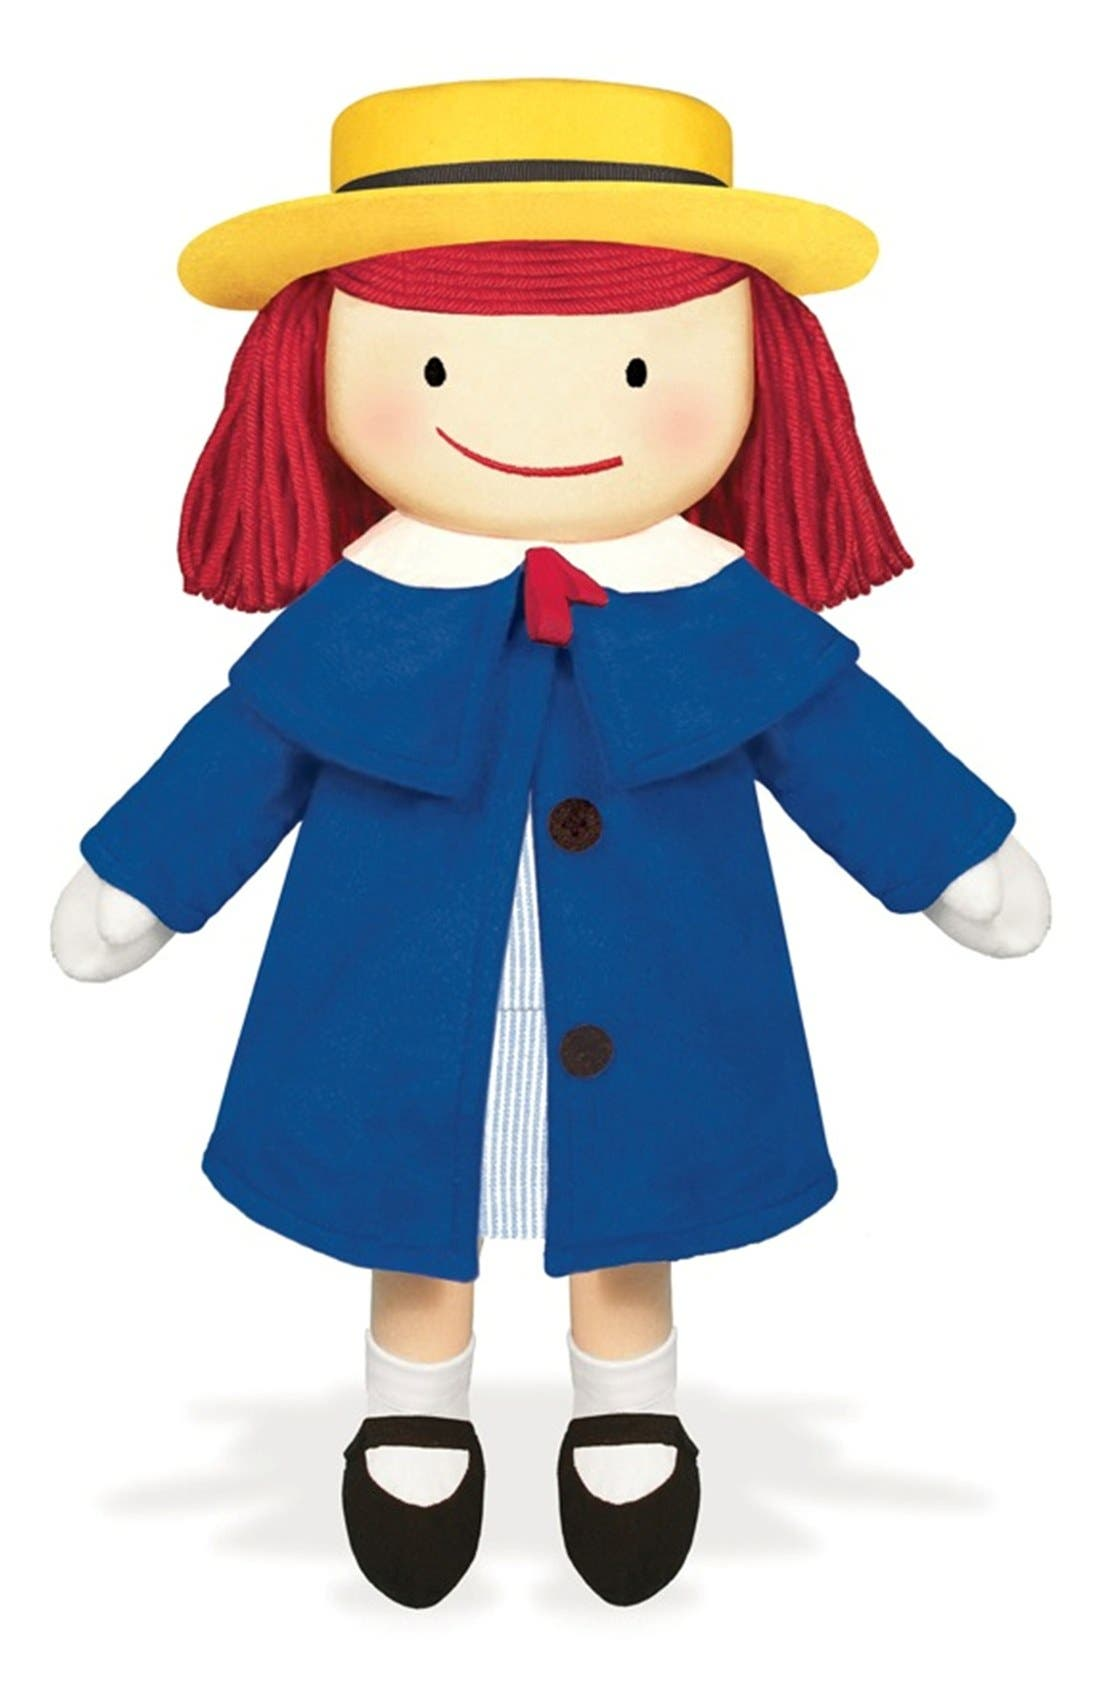 yOttOy Madeline™ Stuffed Doll